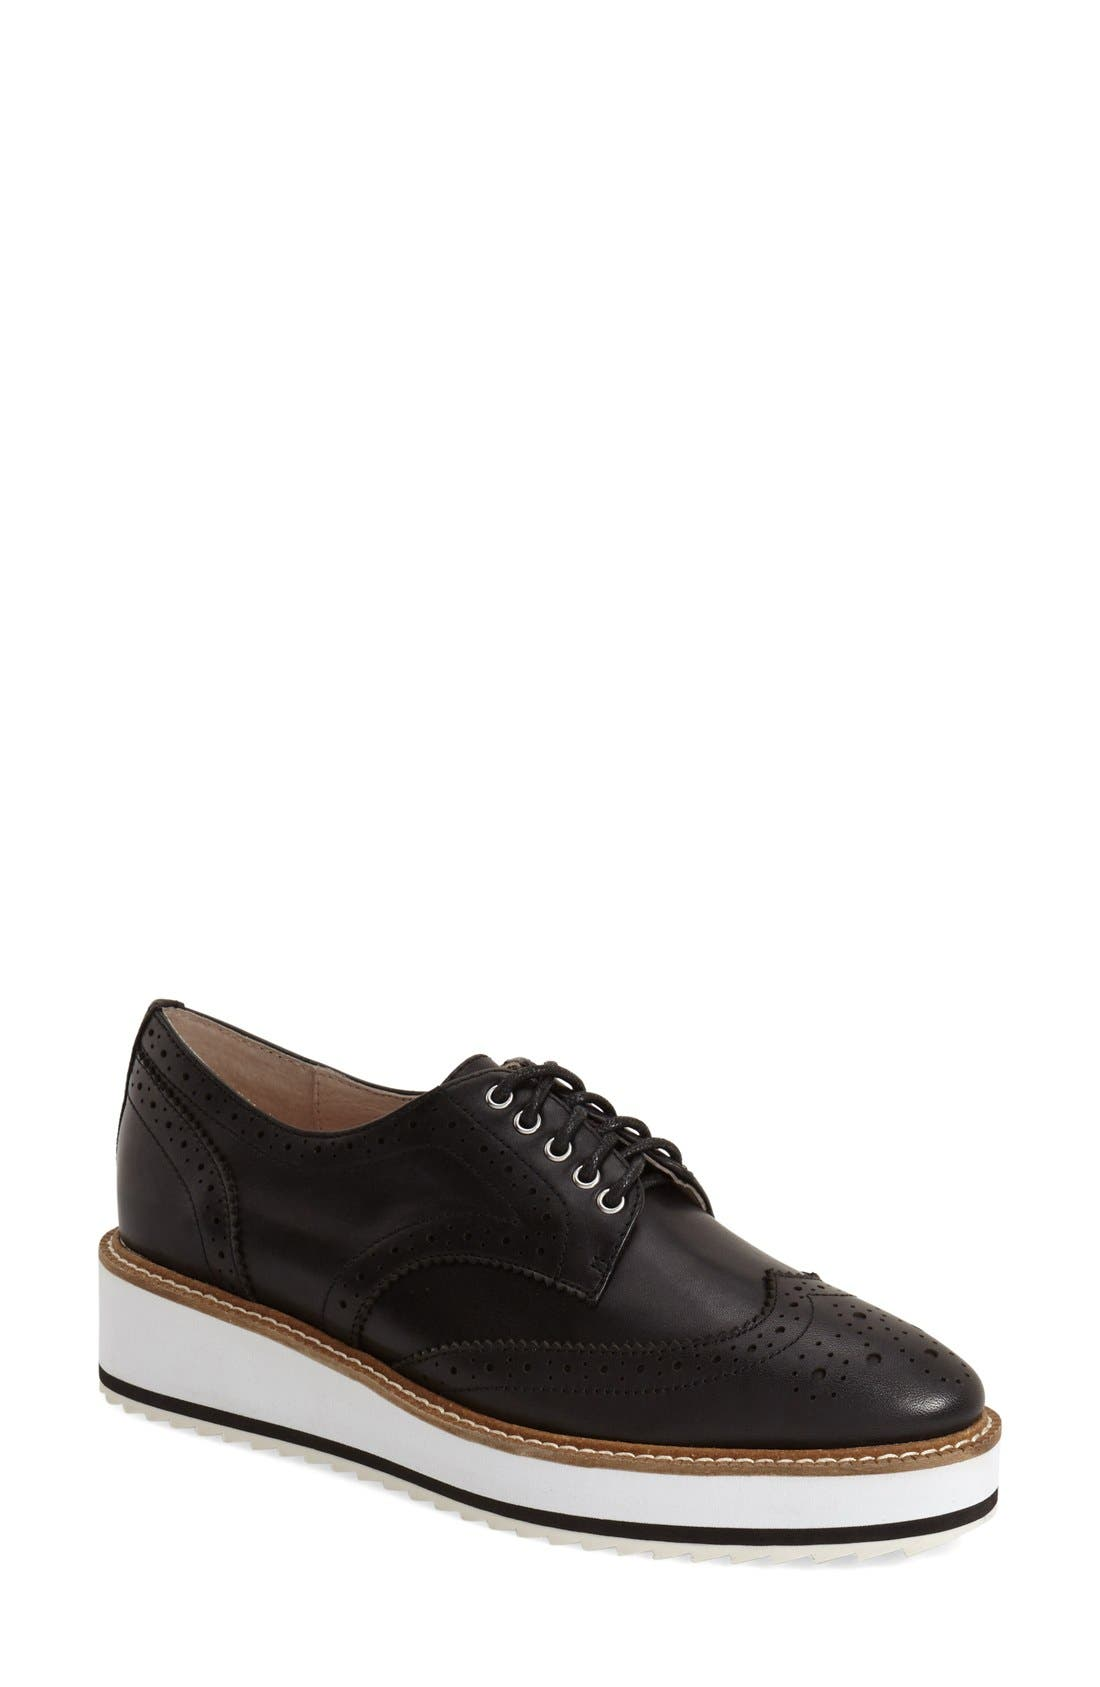 Main Image - Shellys London Emma Platform Oxford (Women)